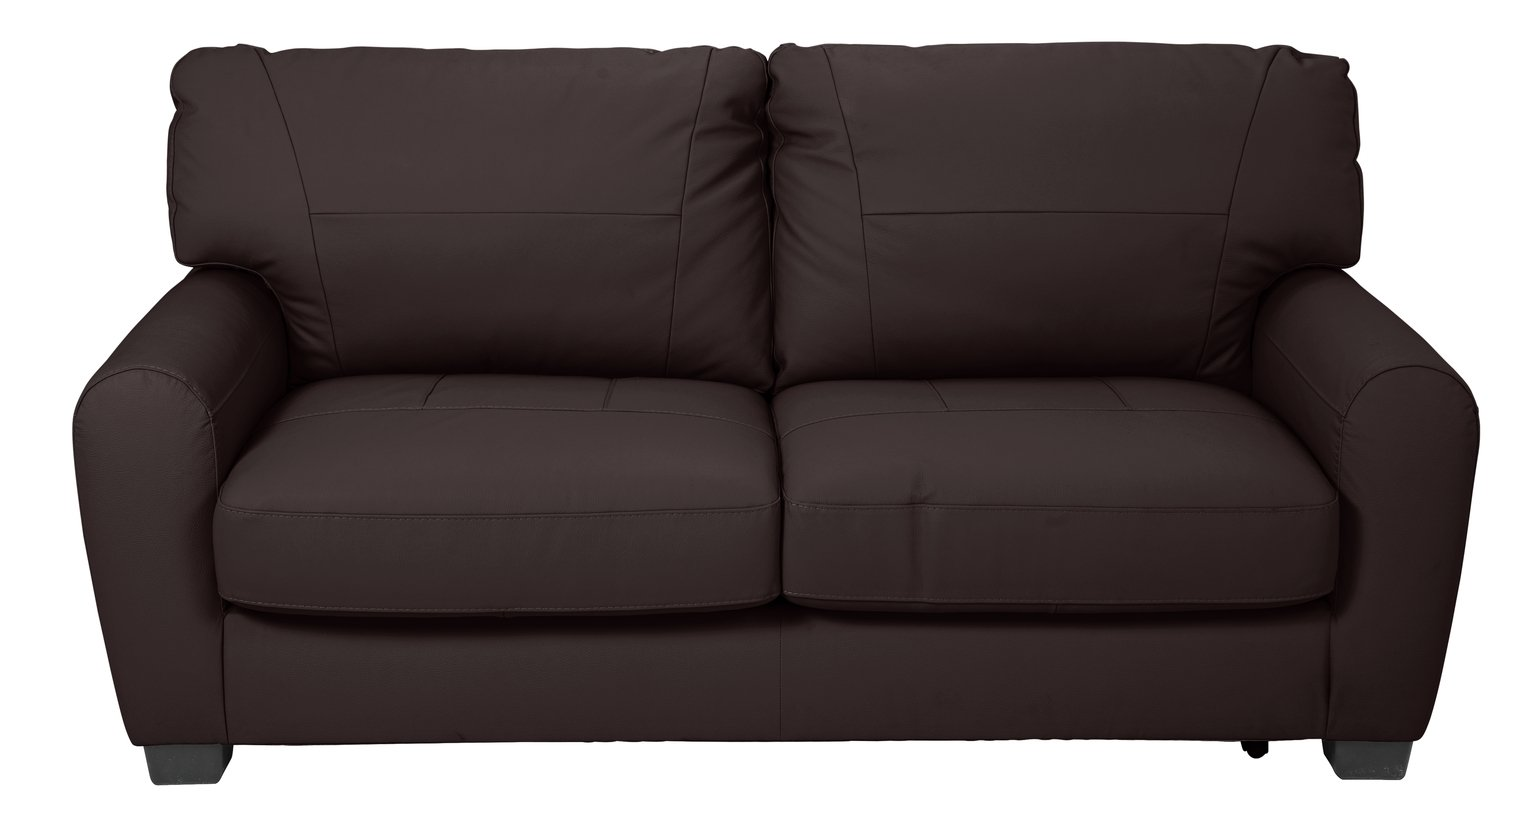 Argos Home Stefano 2 Seater Faux Leather Sofa Bed -Chocolate